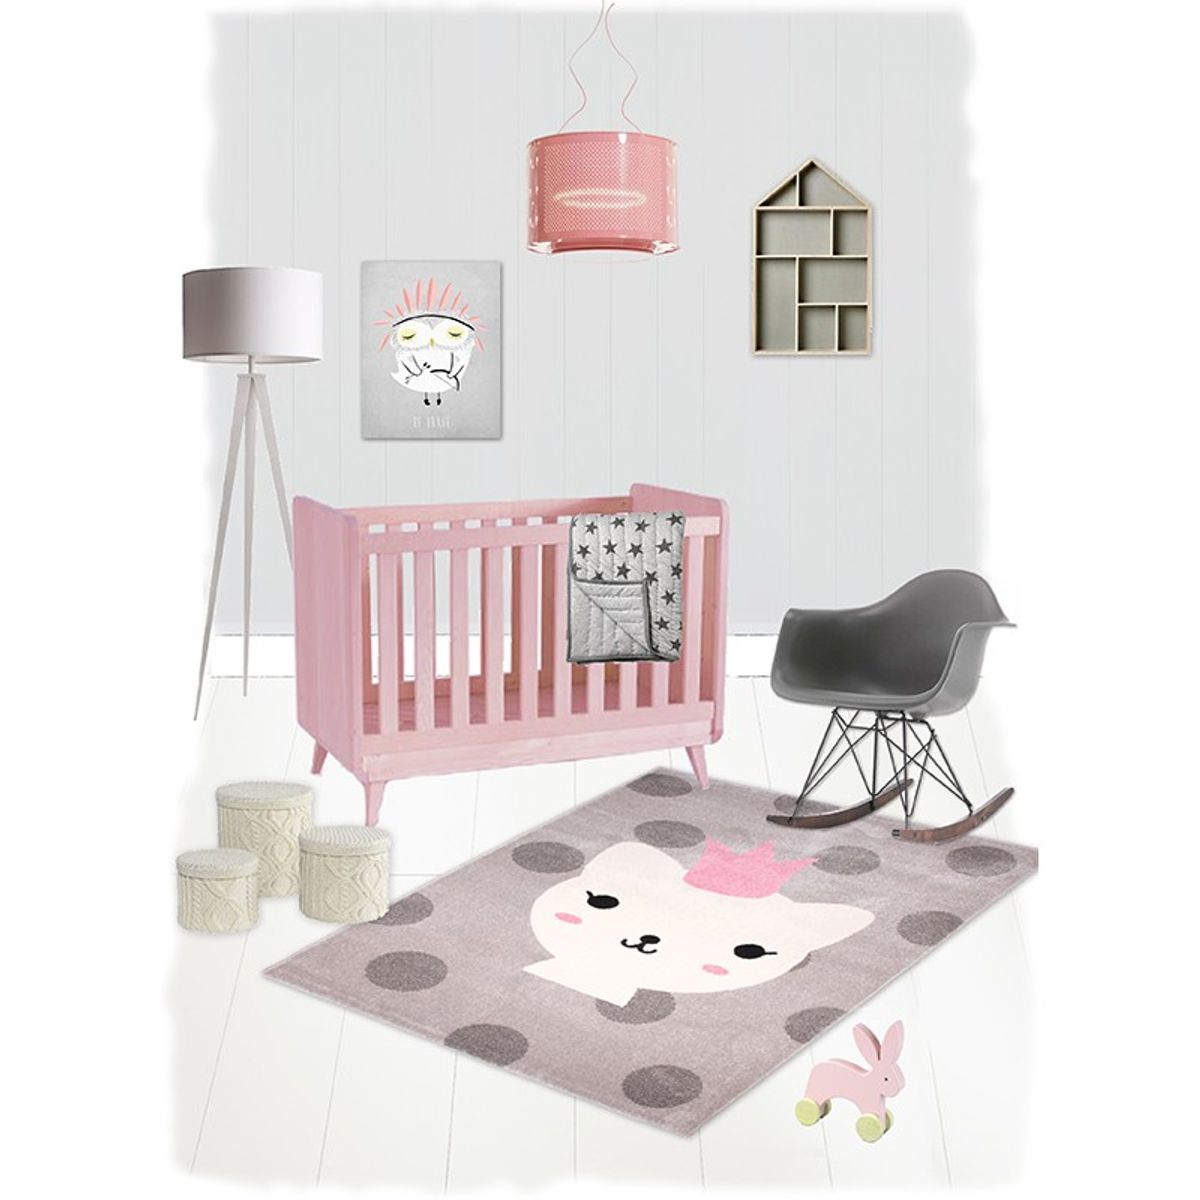 kinderteppich katze 120x170cm rosa grau von nattiot. Black Bedroom Furniture Sets. Home Design Ideas